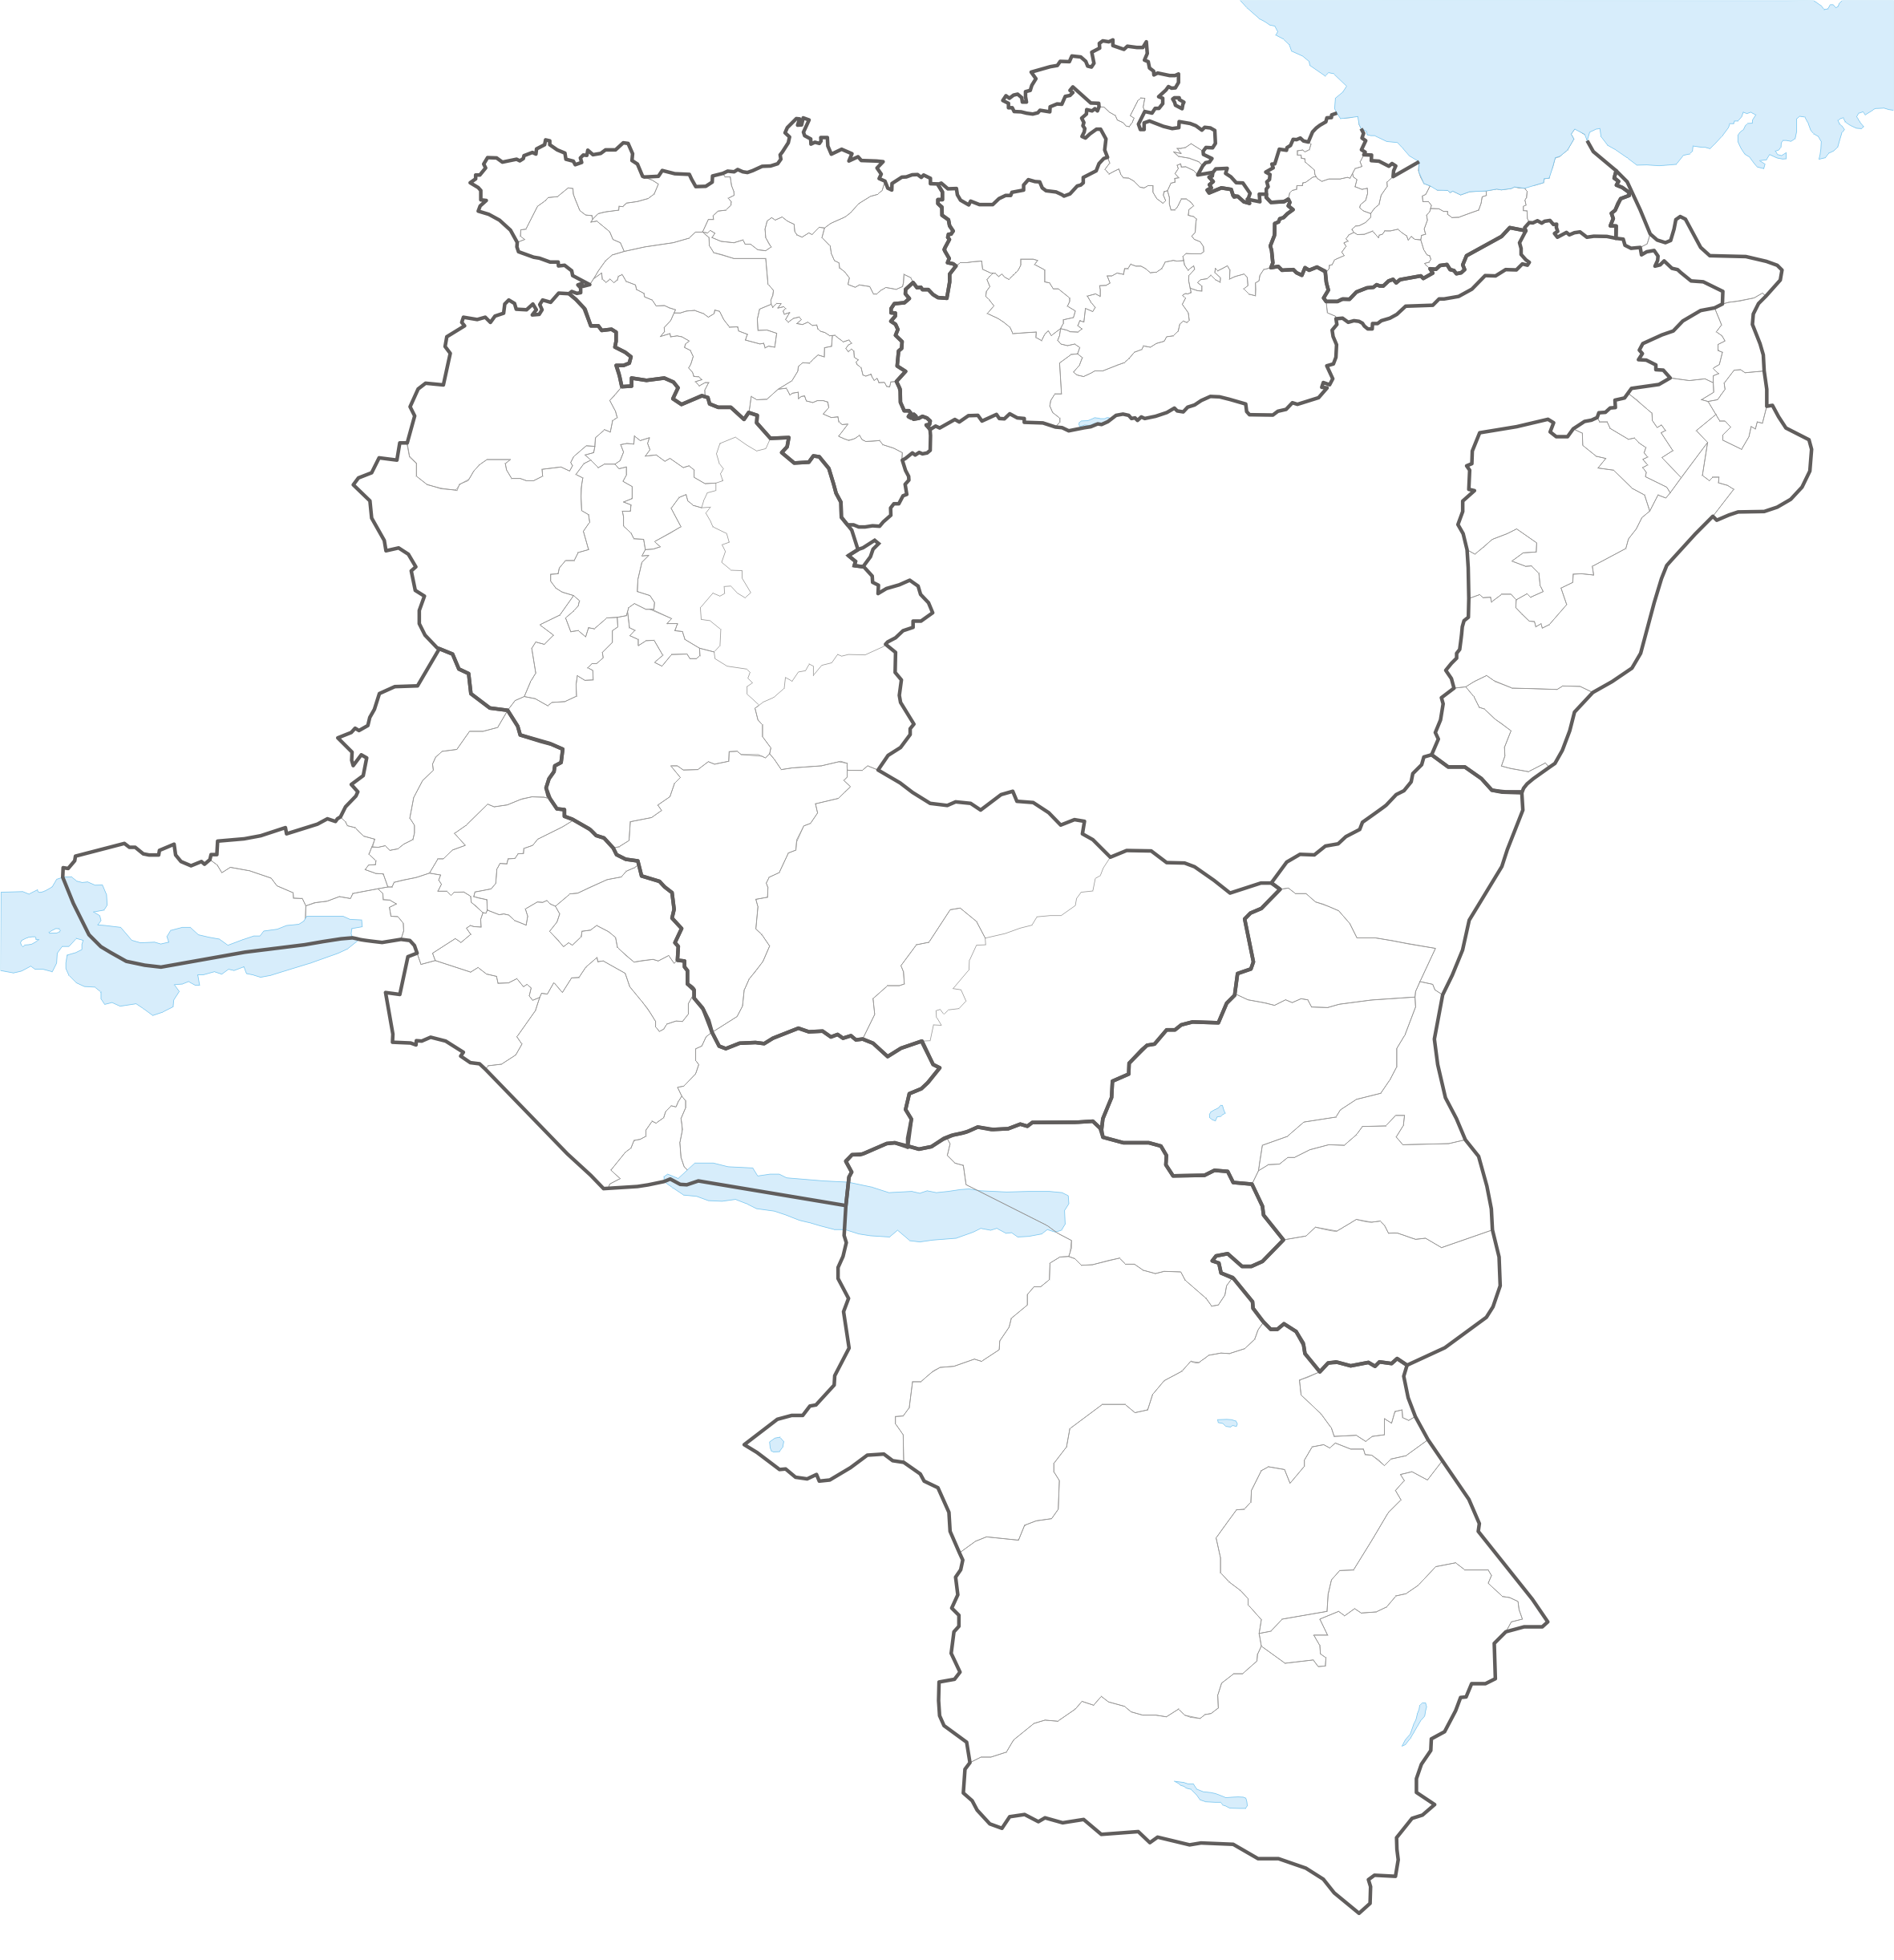 Municipalities of the canton of St Gallen